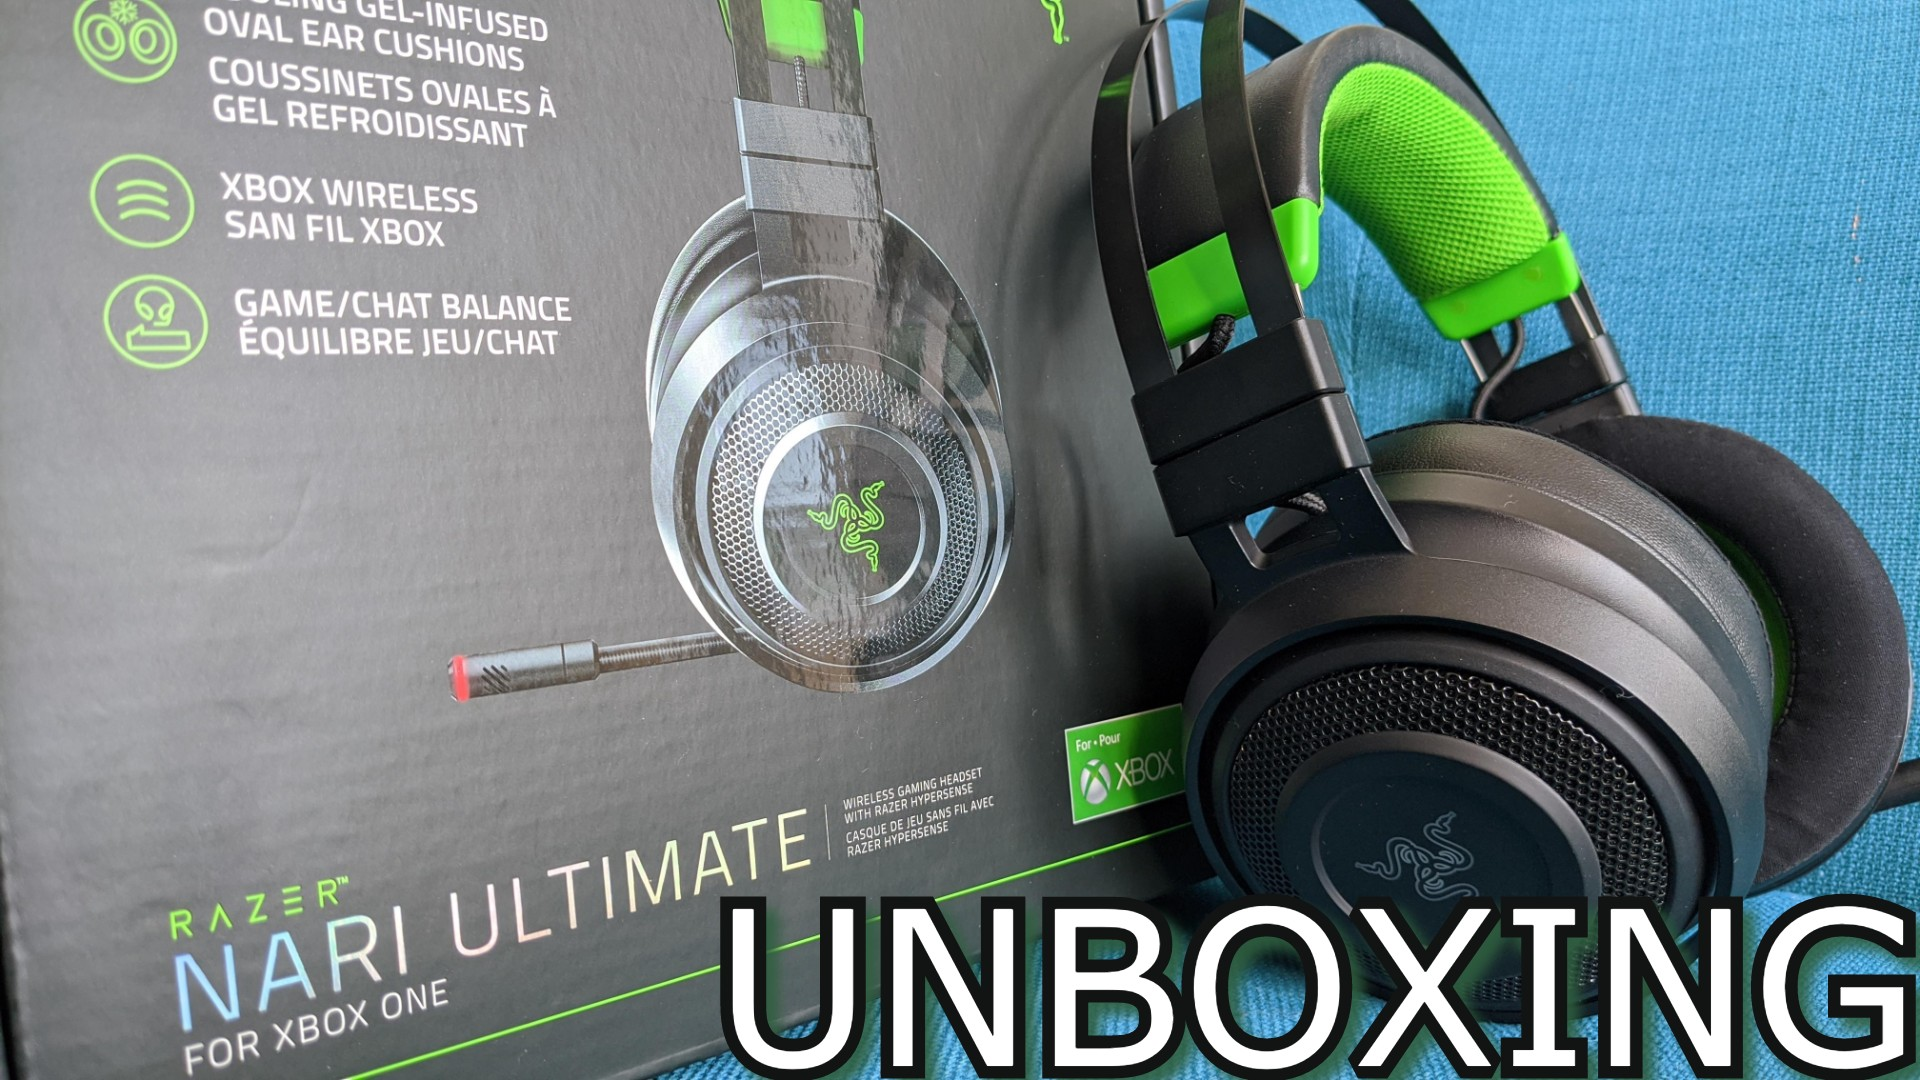 Unboxing And First Look At The Stunning Razer Nari